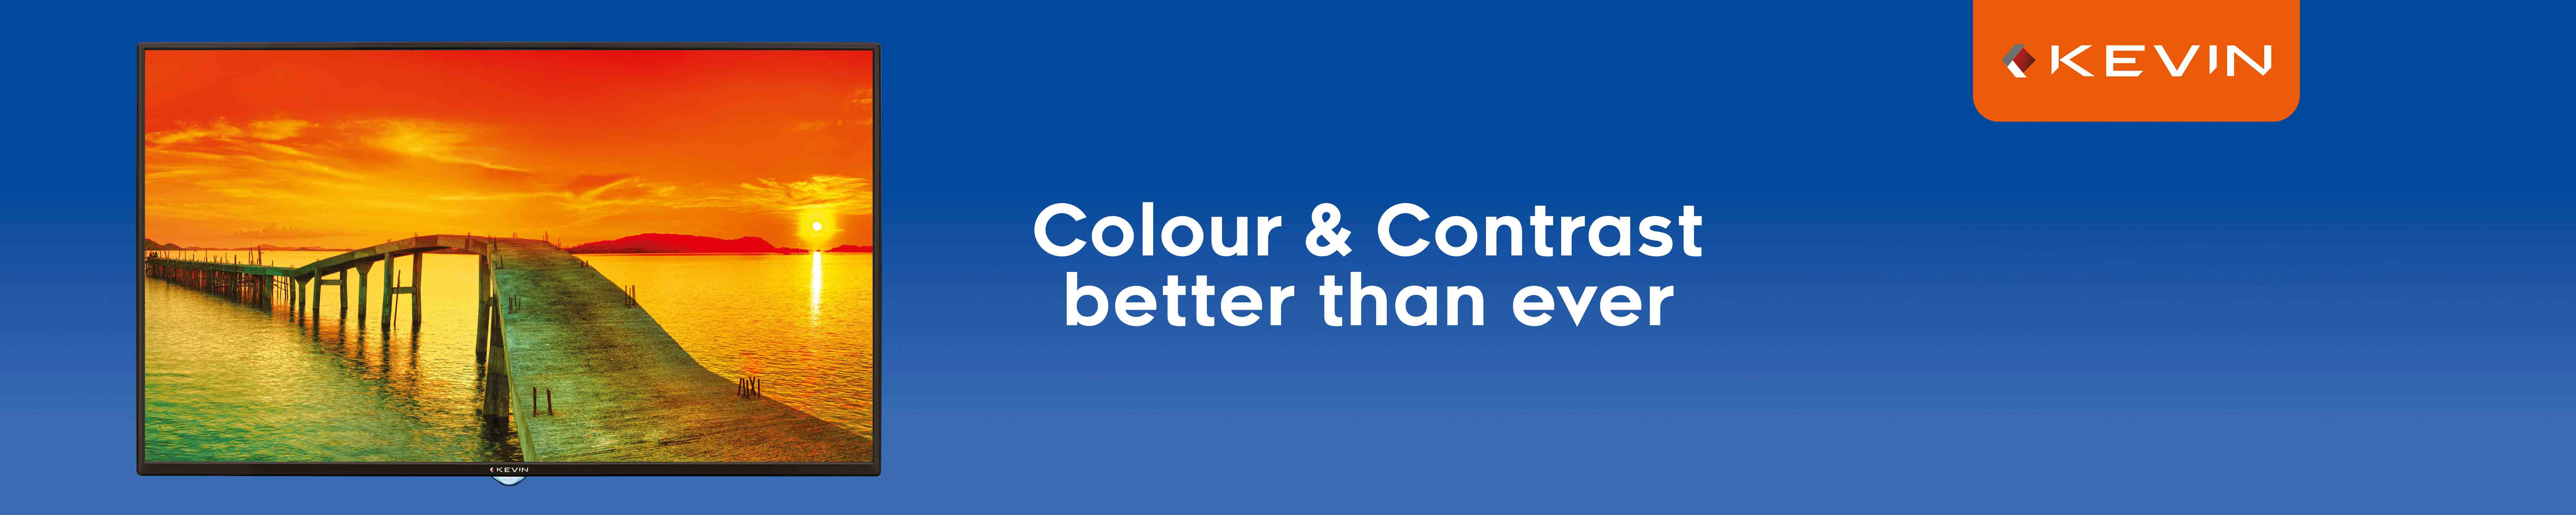 Colour&Contrast better than ever